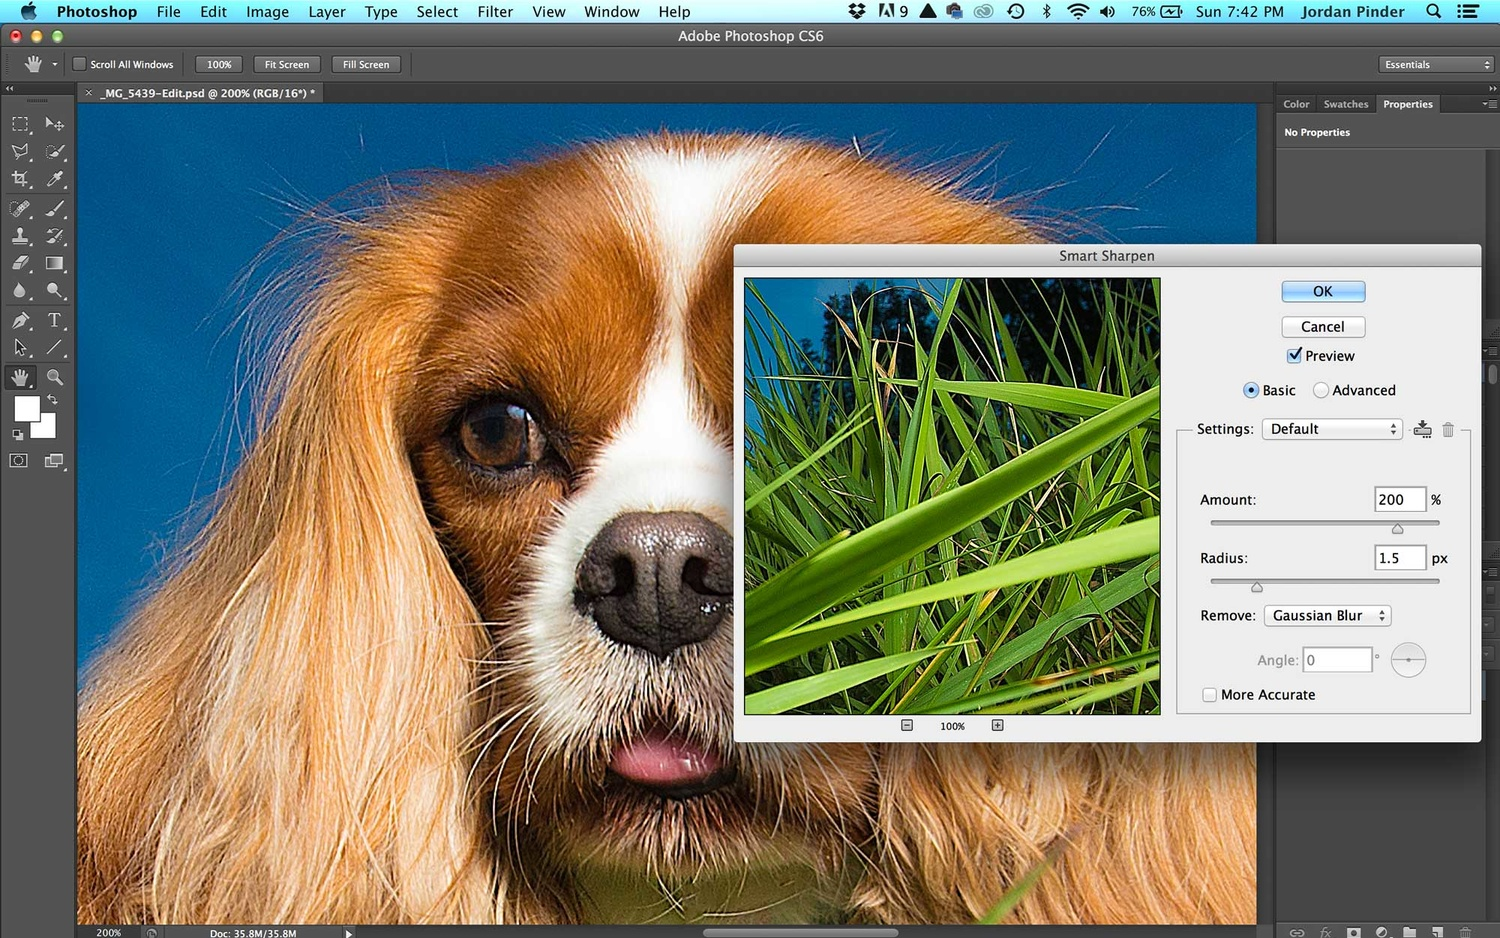 sharpening an image of a spaniel